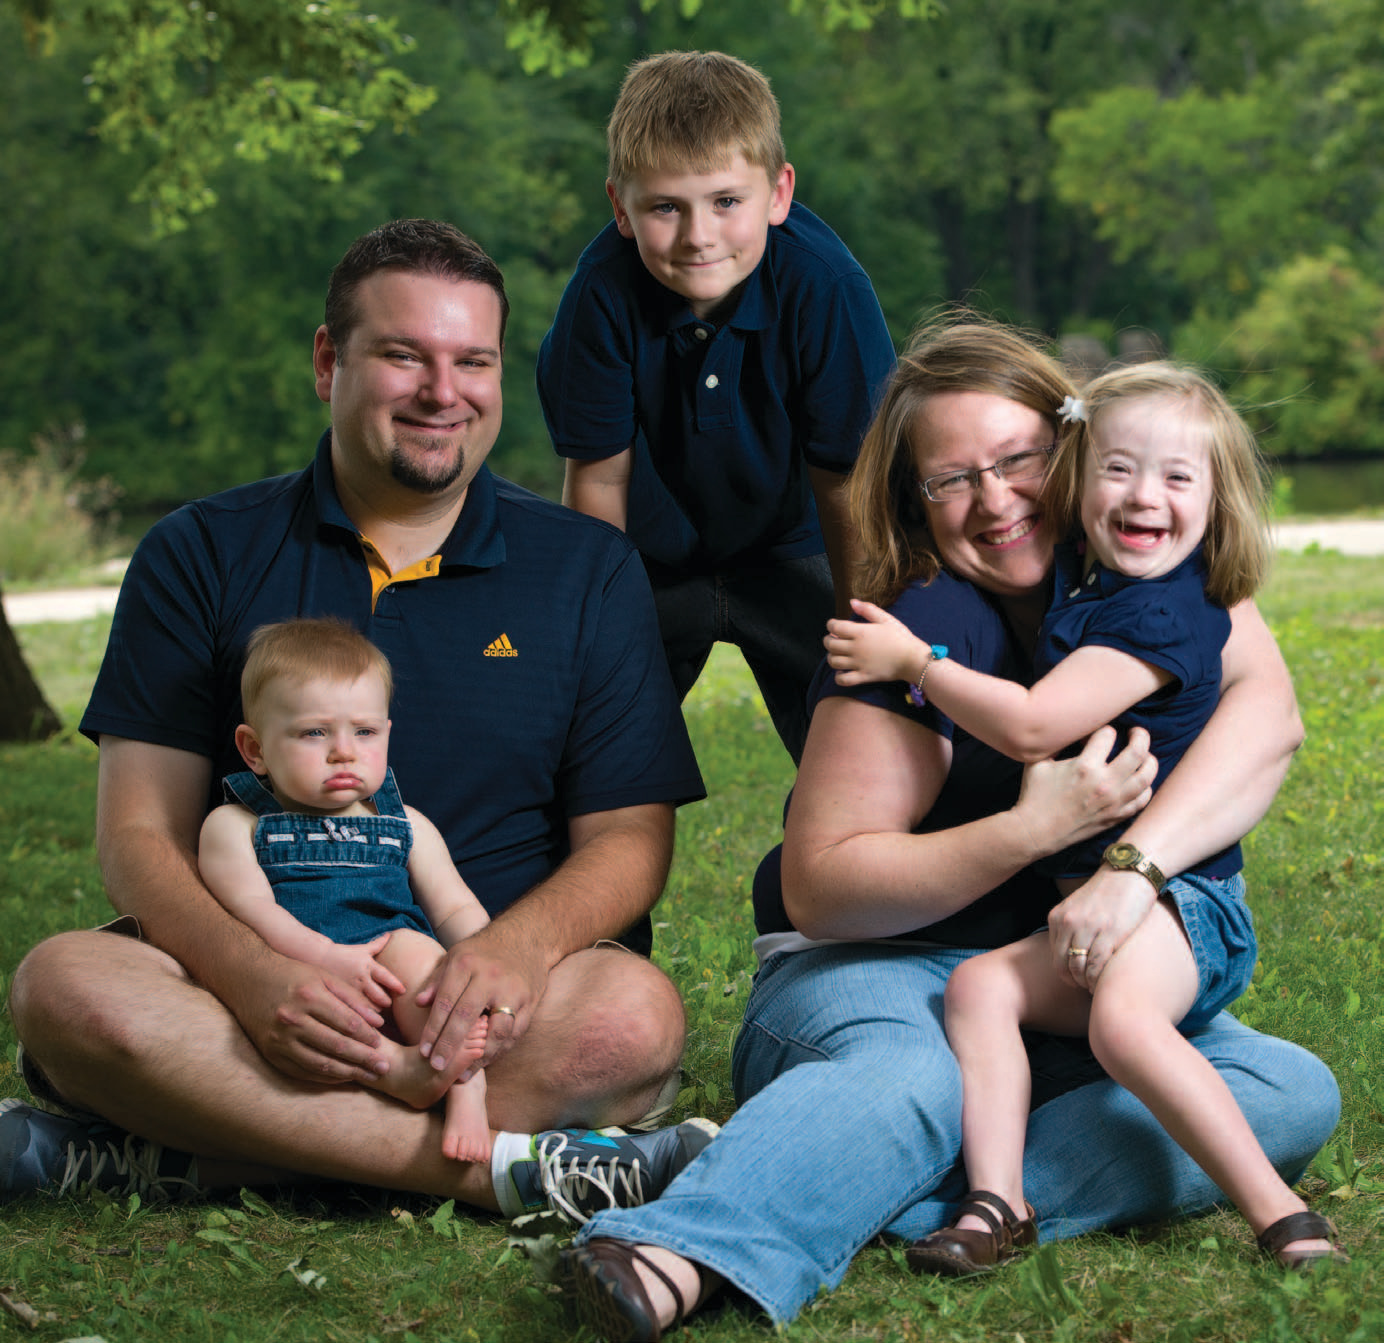 Michelle and Matthew Odland family, Wausau